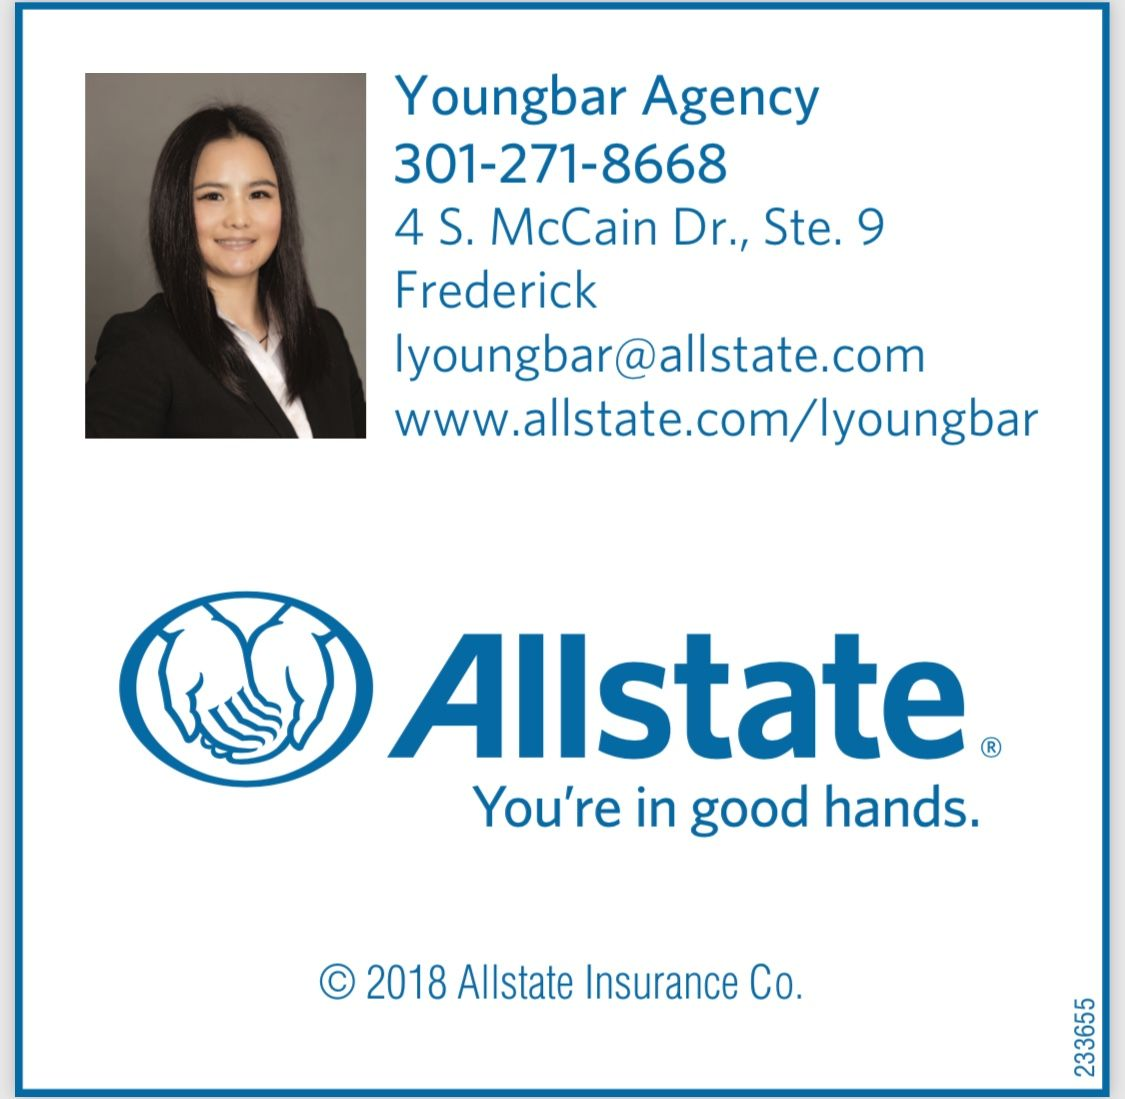 Allstate Quote Hiring Licensed Insurance Sales Job Benefits If Qualifies We Will .